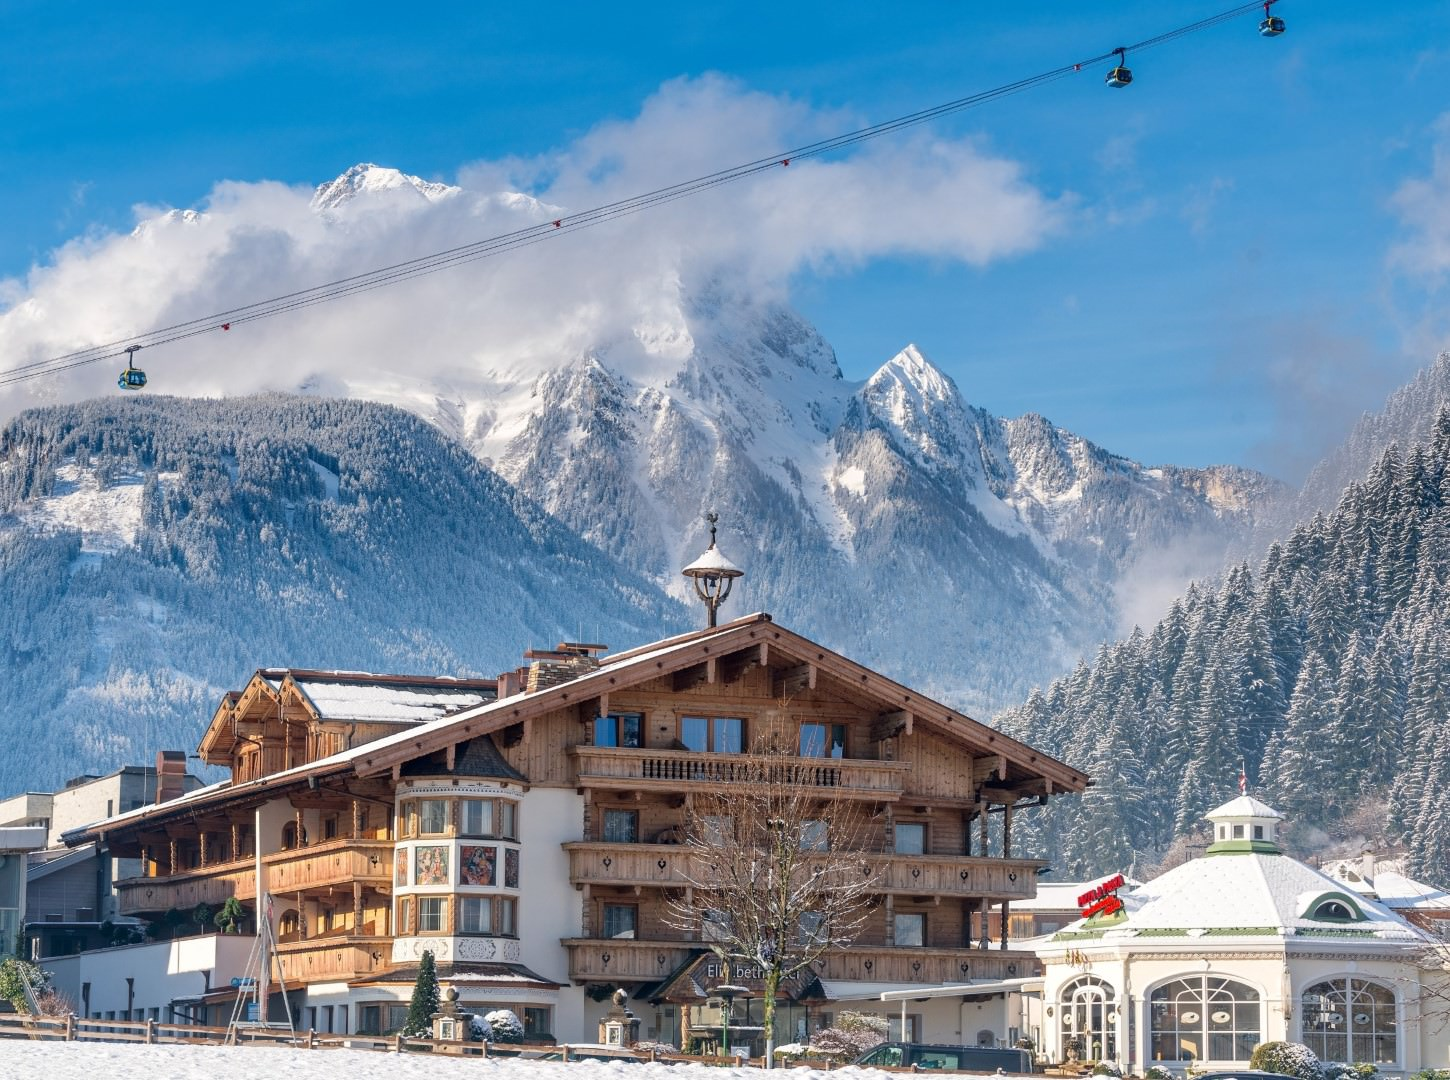 ElisabethHotel - Premium Private Retreat (Adults Only) in Mayrhofen (Zillertal), ElisabethHotel - Premium Private Retreat (Adults Only) / Österreich